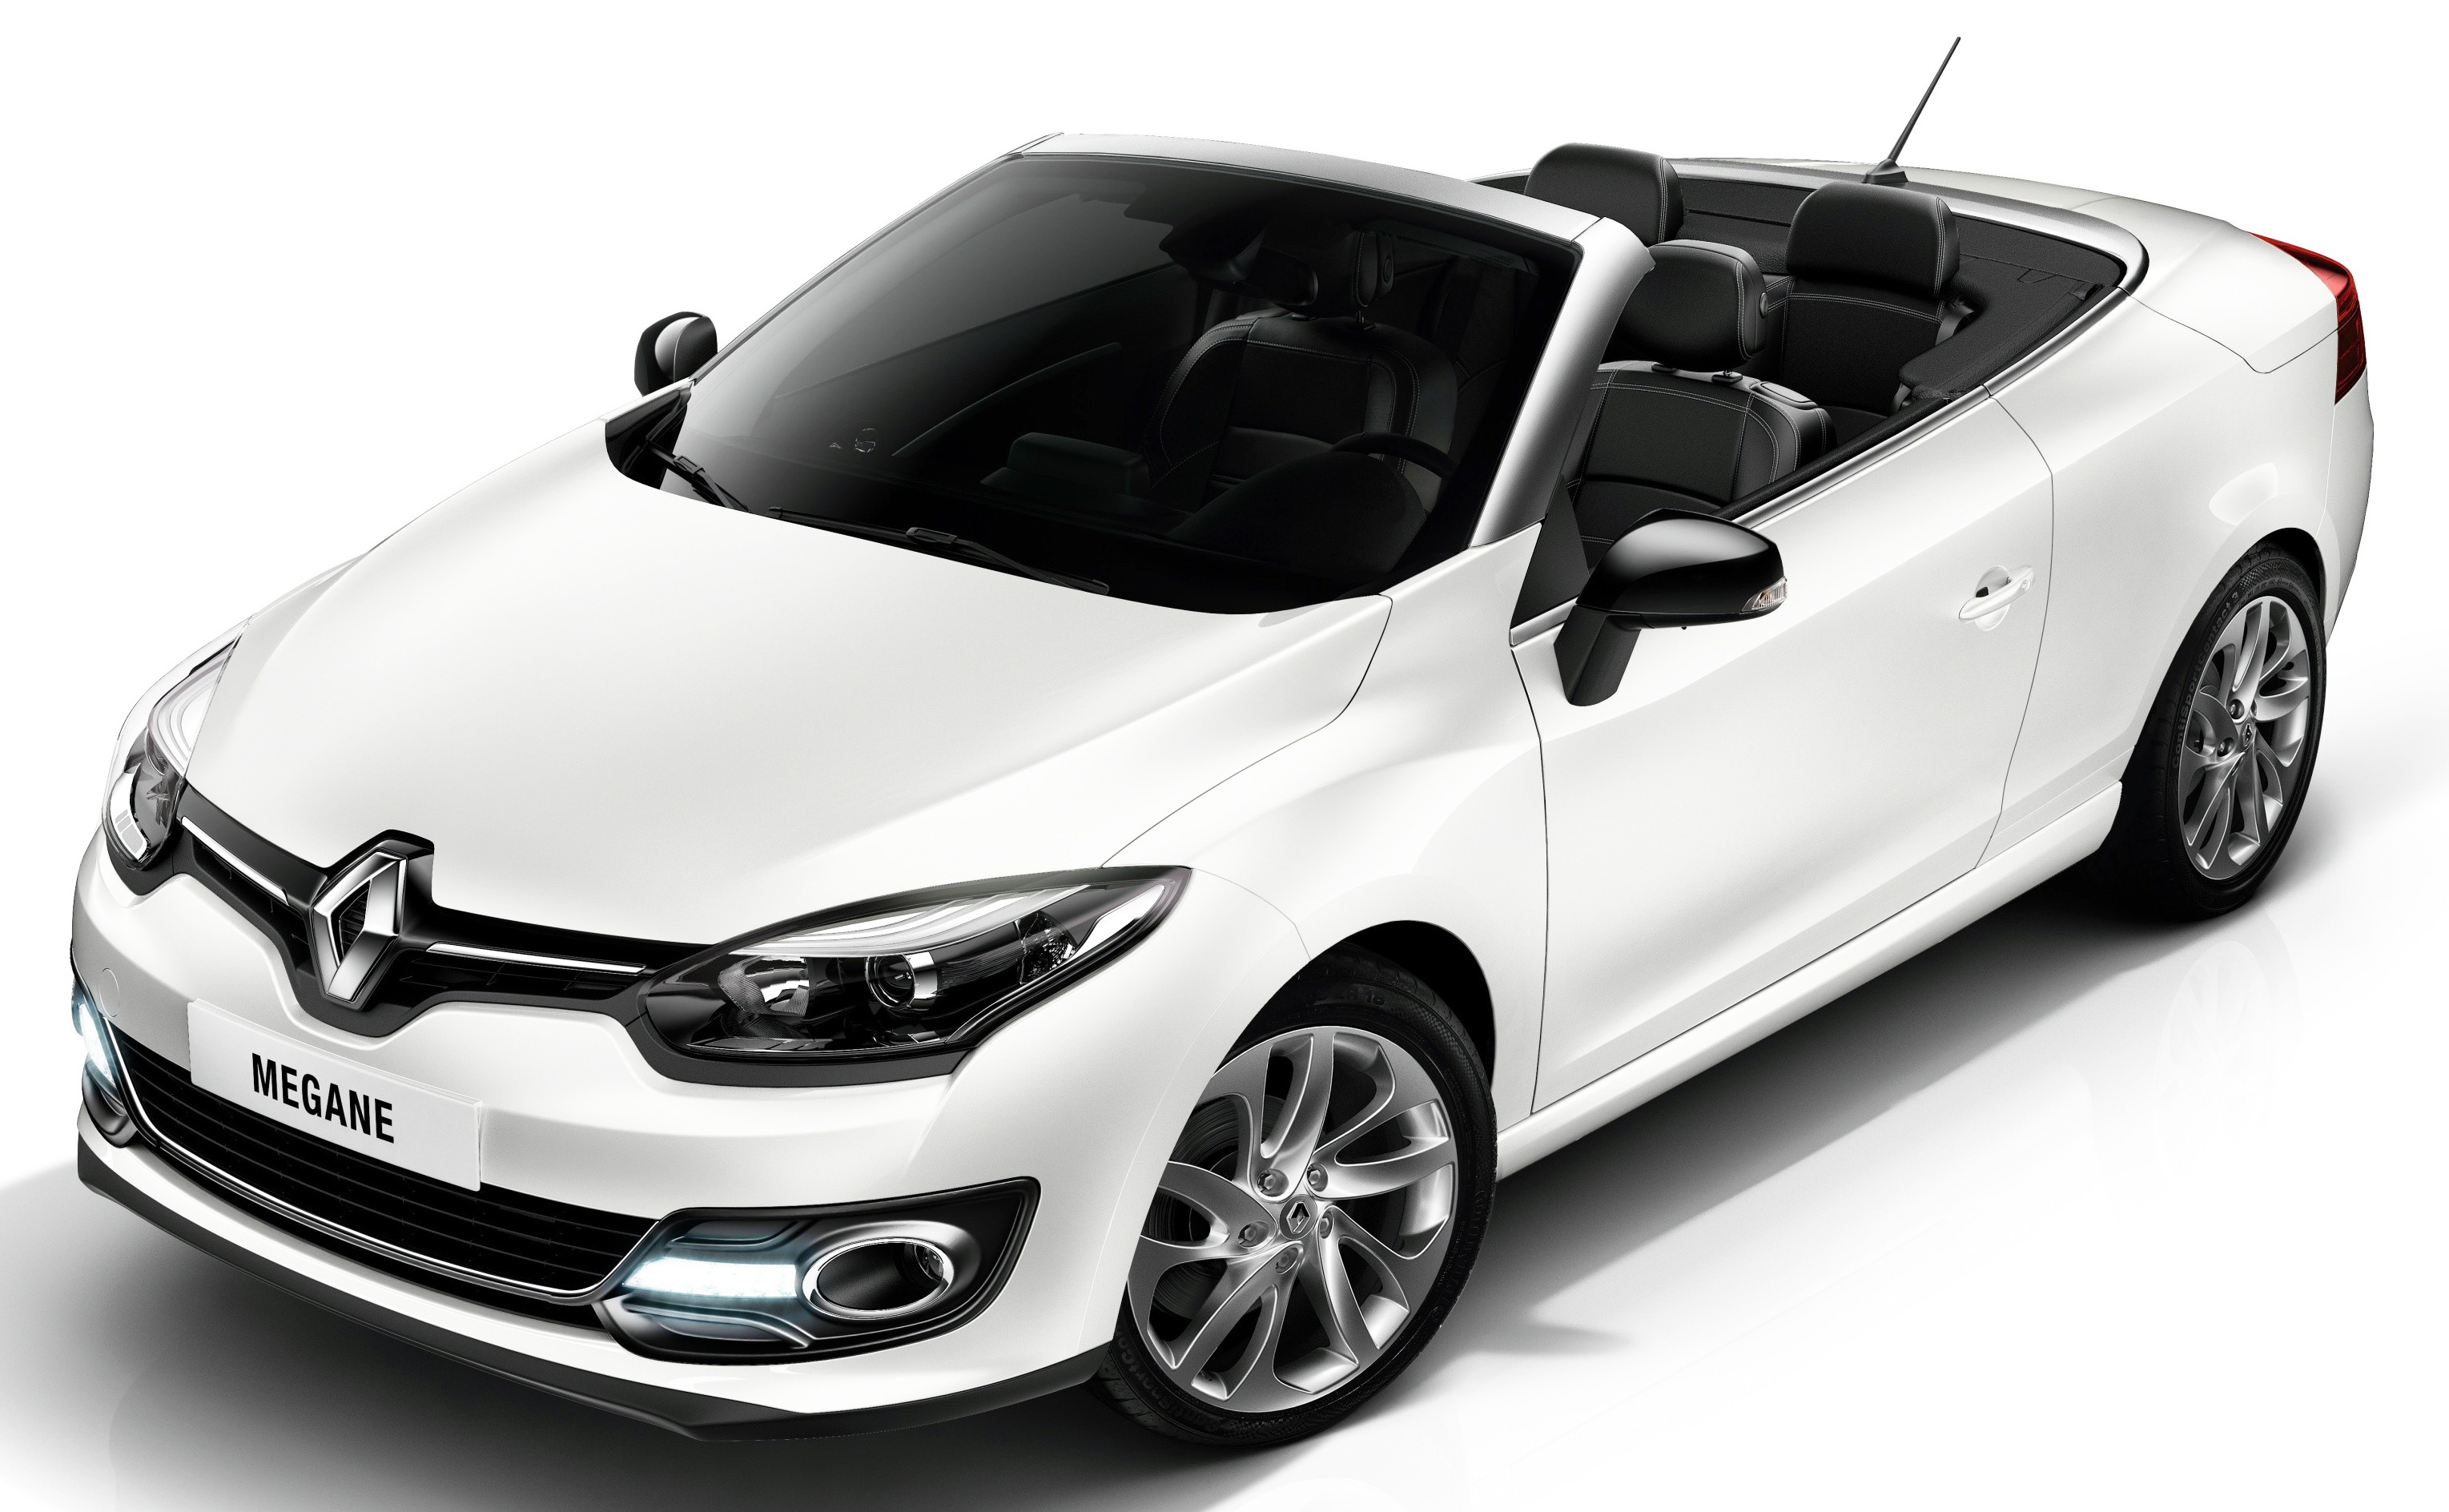 renault megane coupe cabriolet facelifted gets r link system. Black Bedroom Furniture Sets. Home Design Ideas